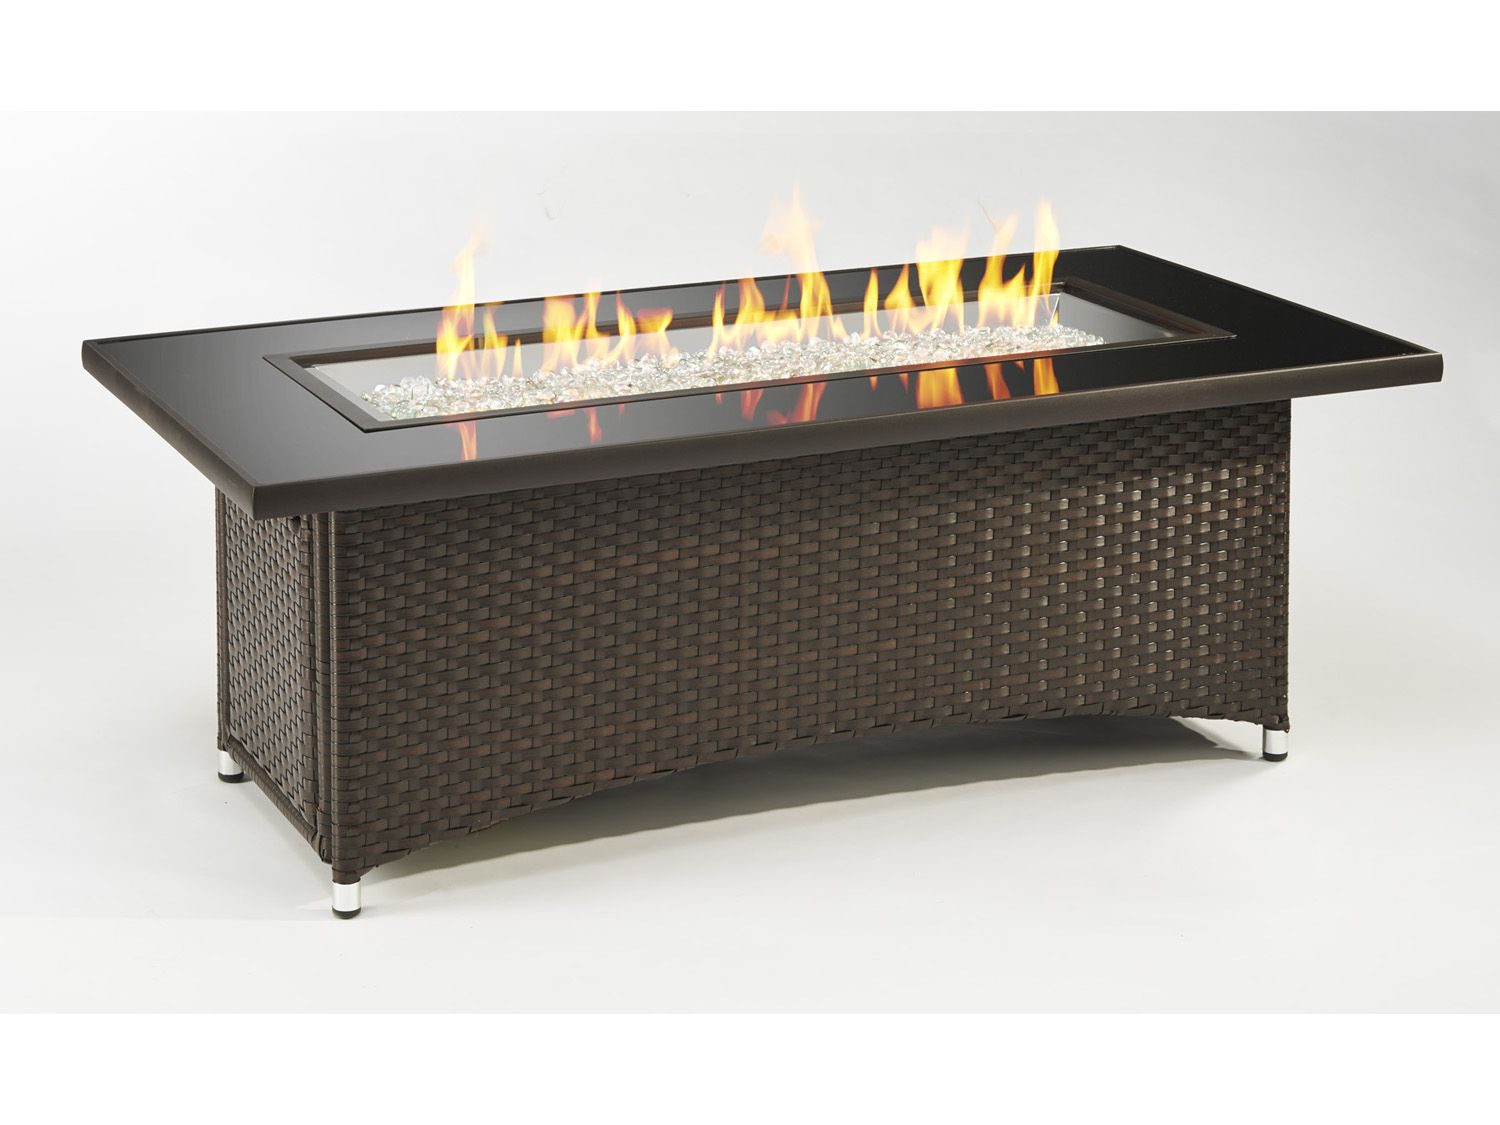 Image Result For Rectangular Fire Pit With Wicker